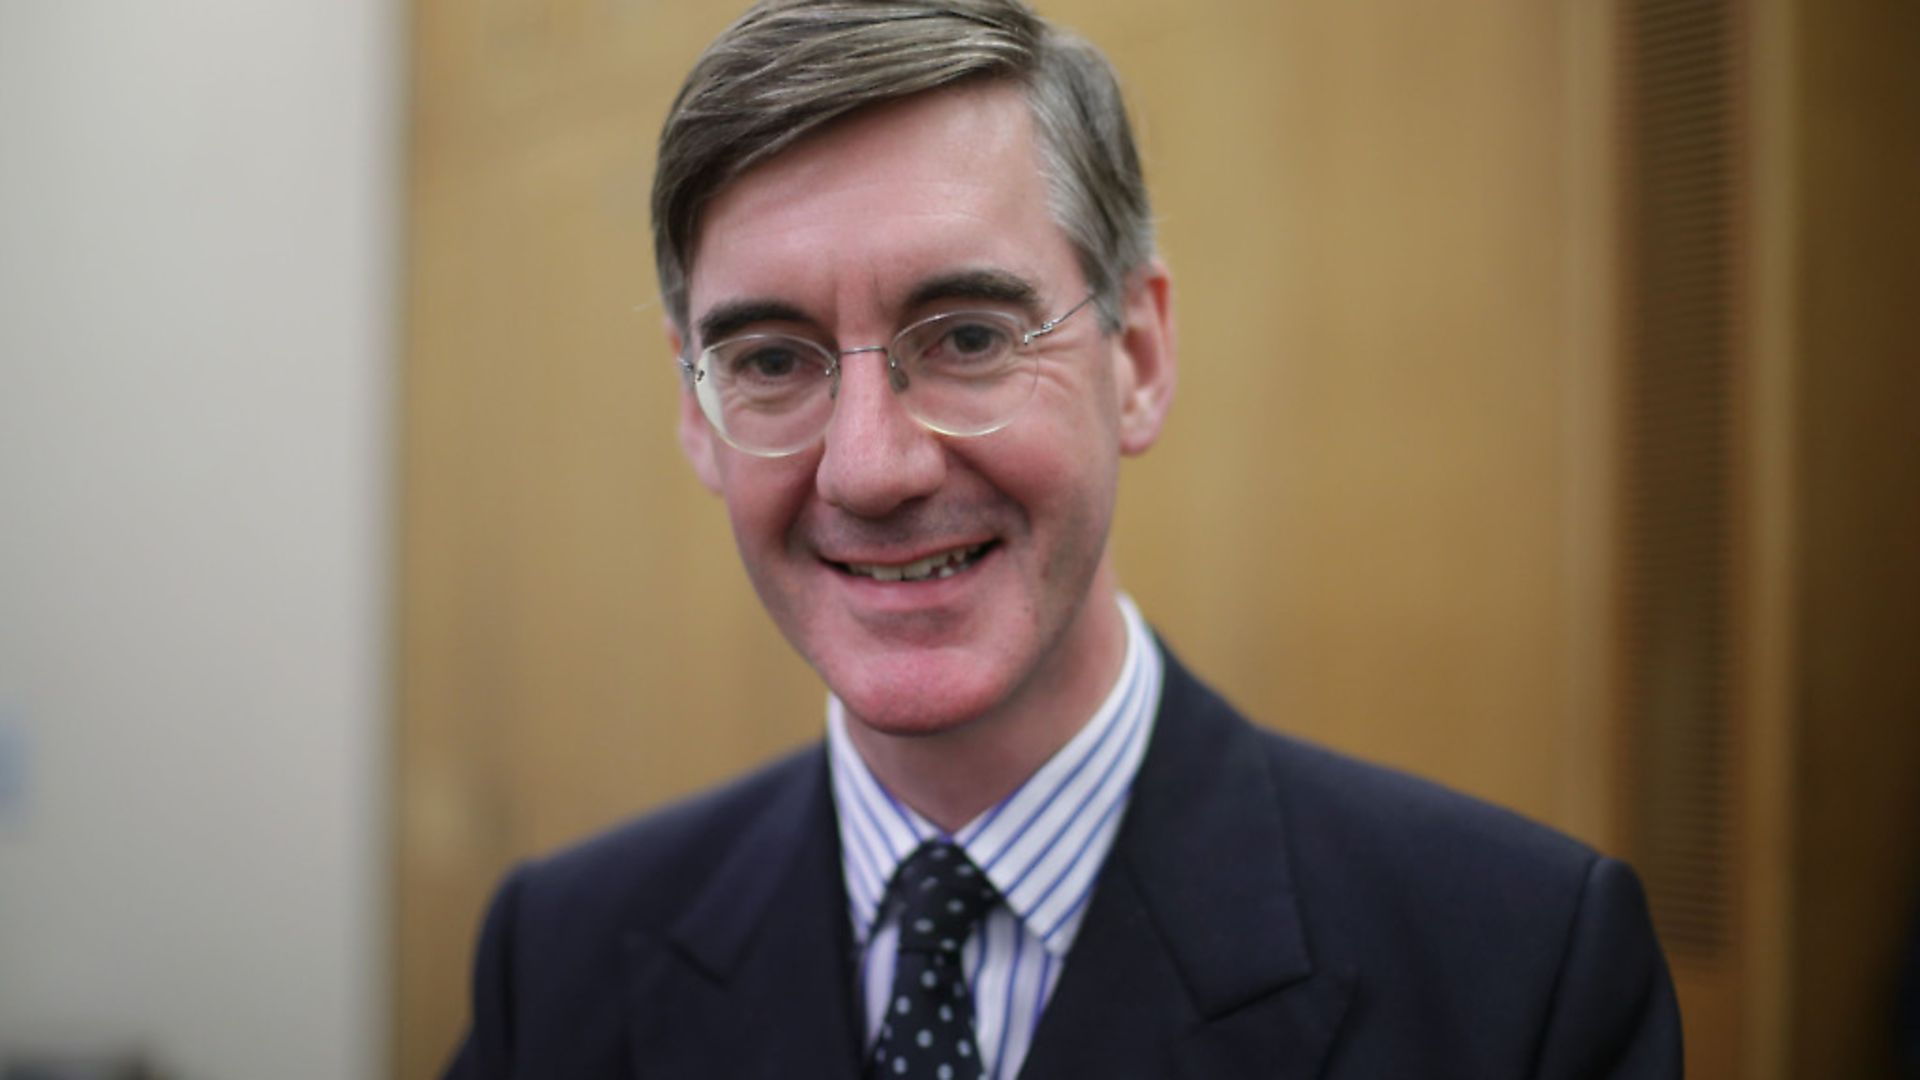 Tory Eurosceptic MP Jacob Rees-Mogg. Picture: PA Wire - Credit: PA Wire/PA Images